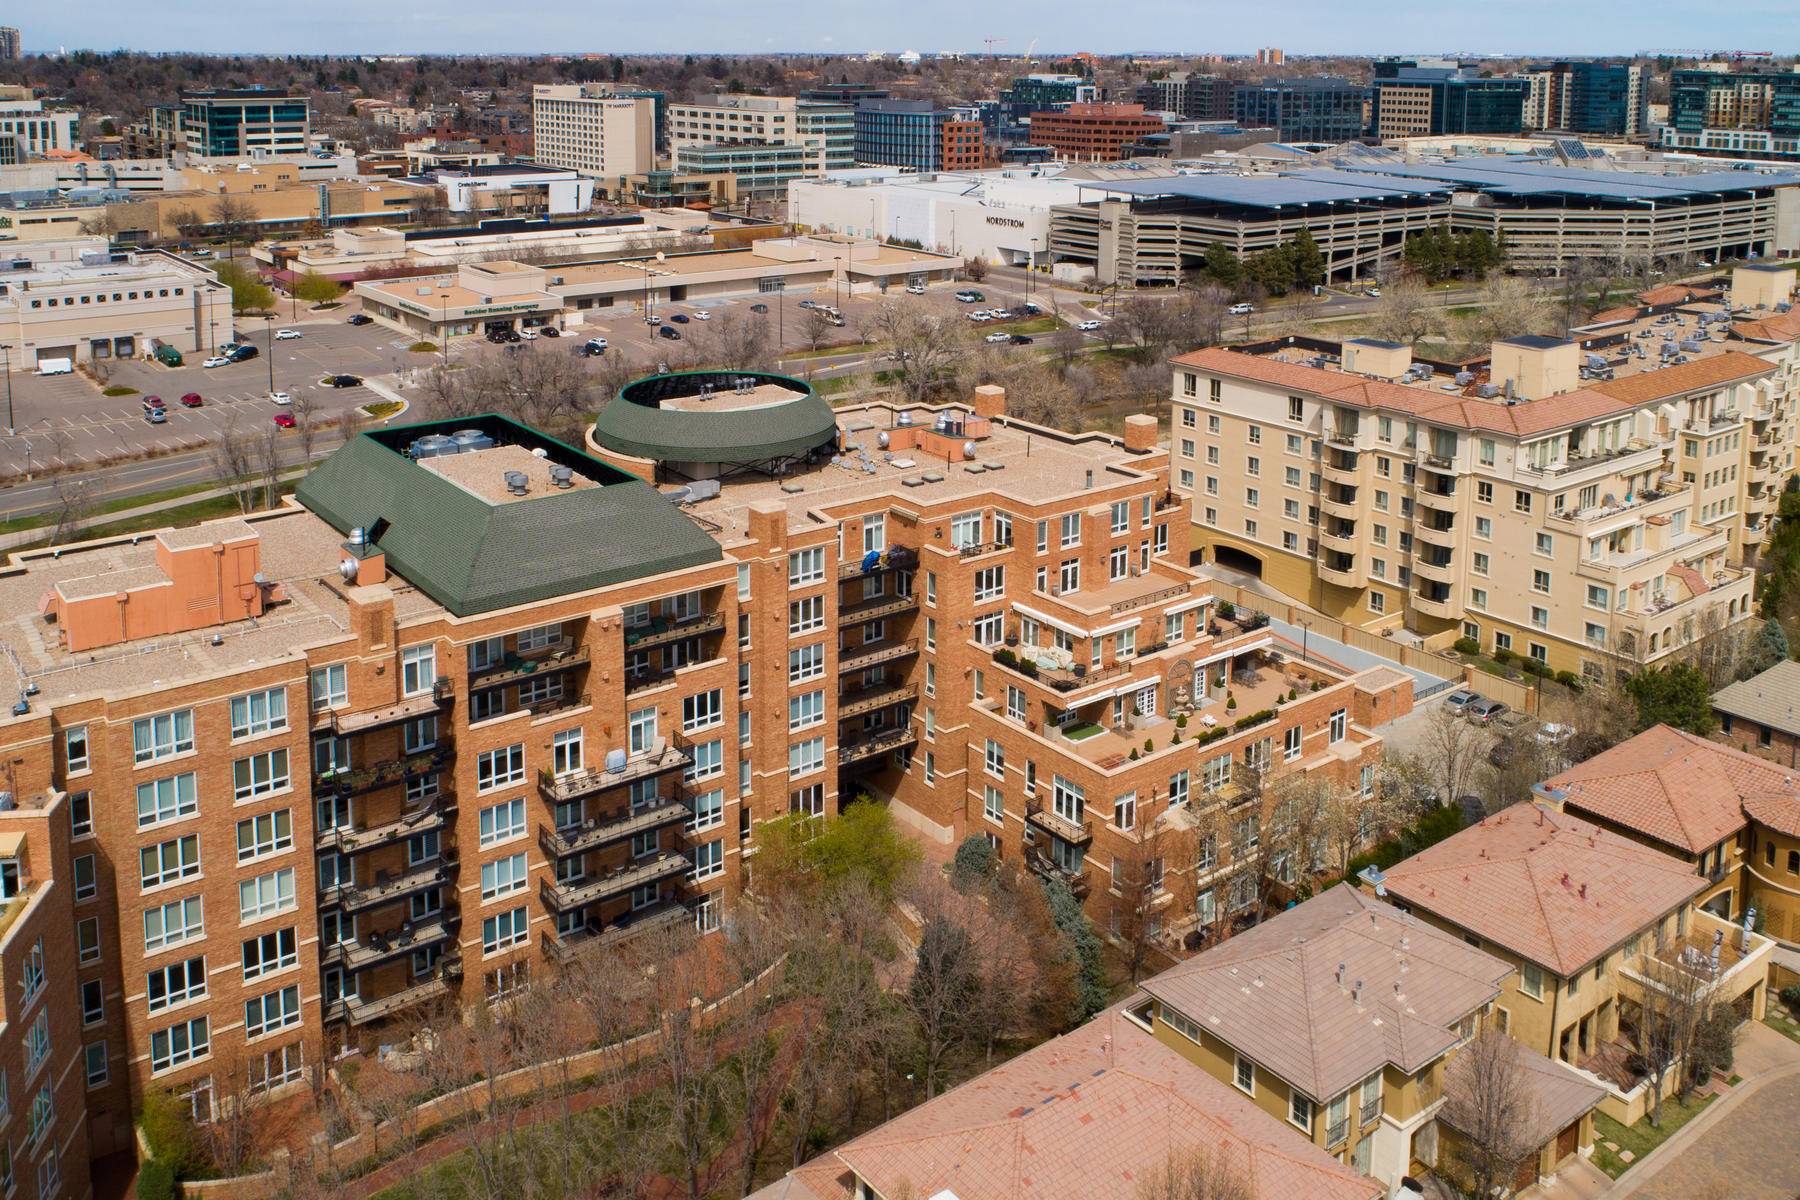 2400 Cherry Creek S Drive 209-049-044-Aerial-MLS_Size.jpg